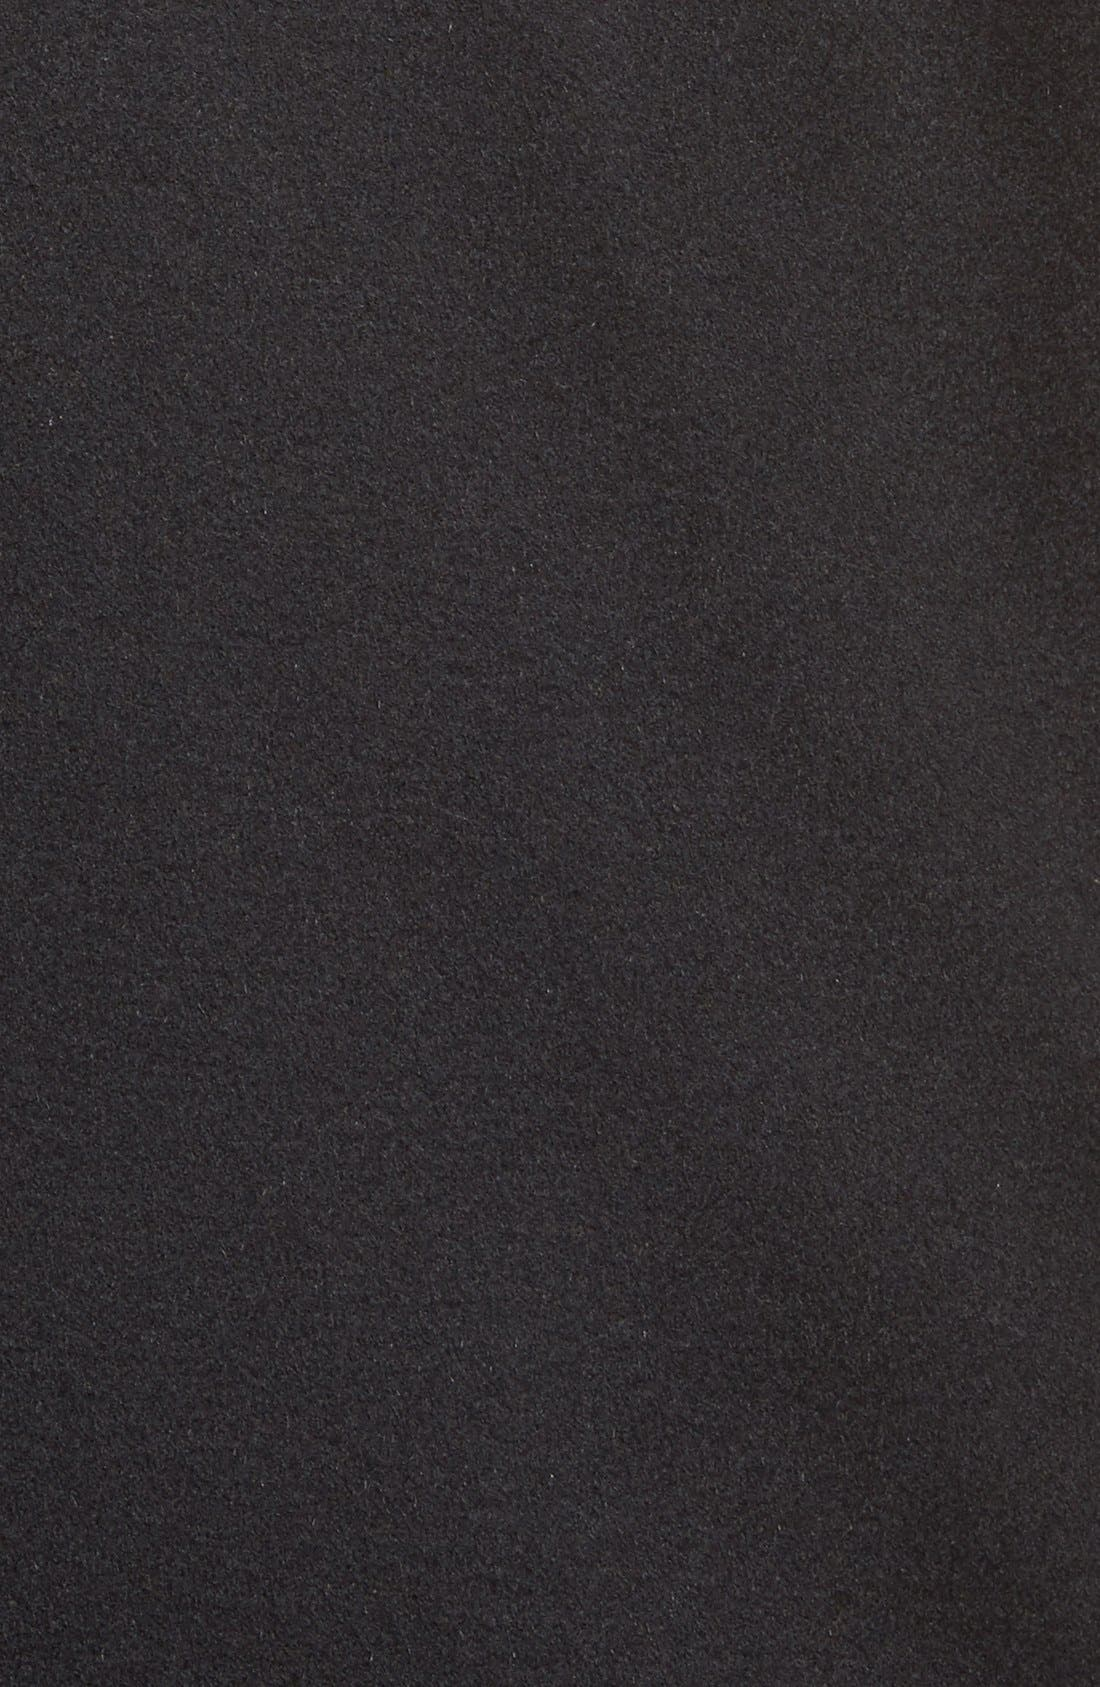 Sheffield Classic Fit Wool & Cashmere Overcoat,                             Alternate thumbnail 6, color,                             BLACK